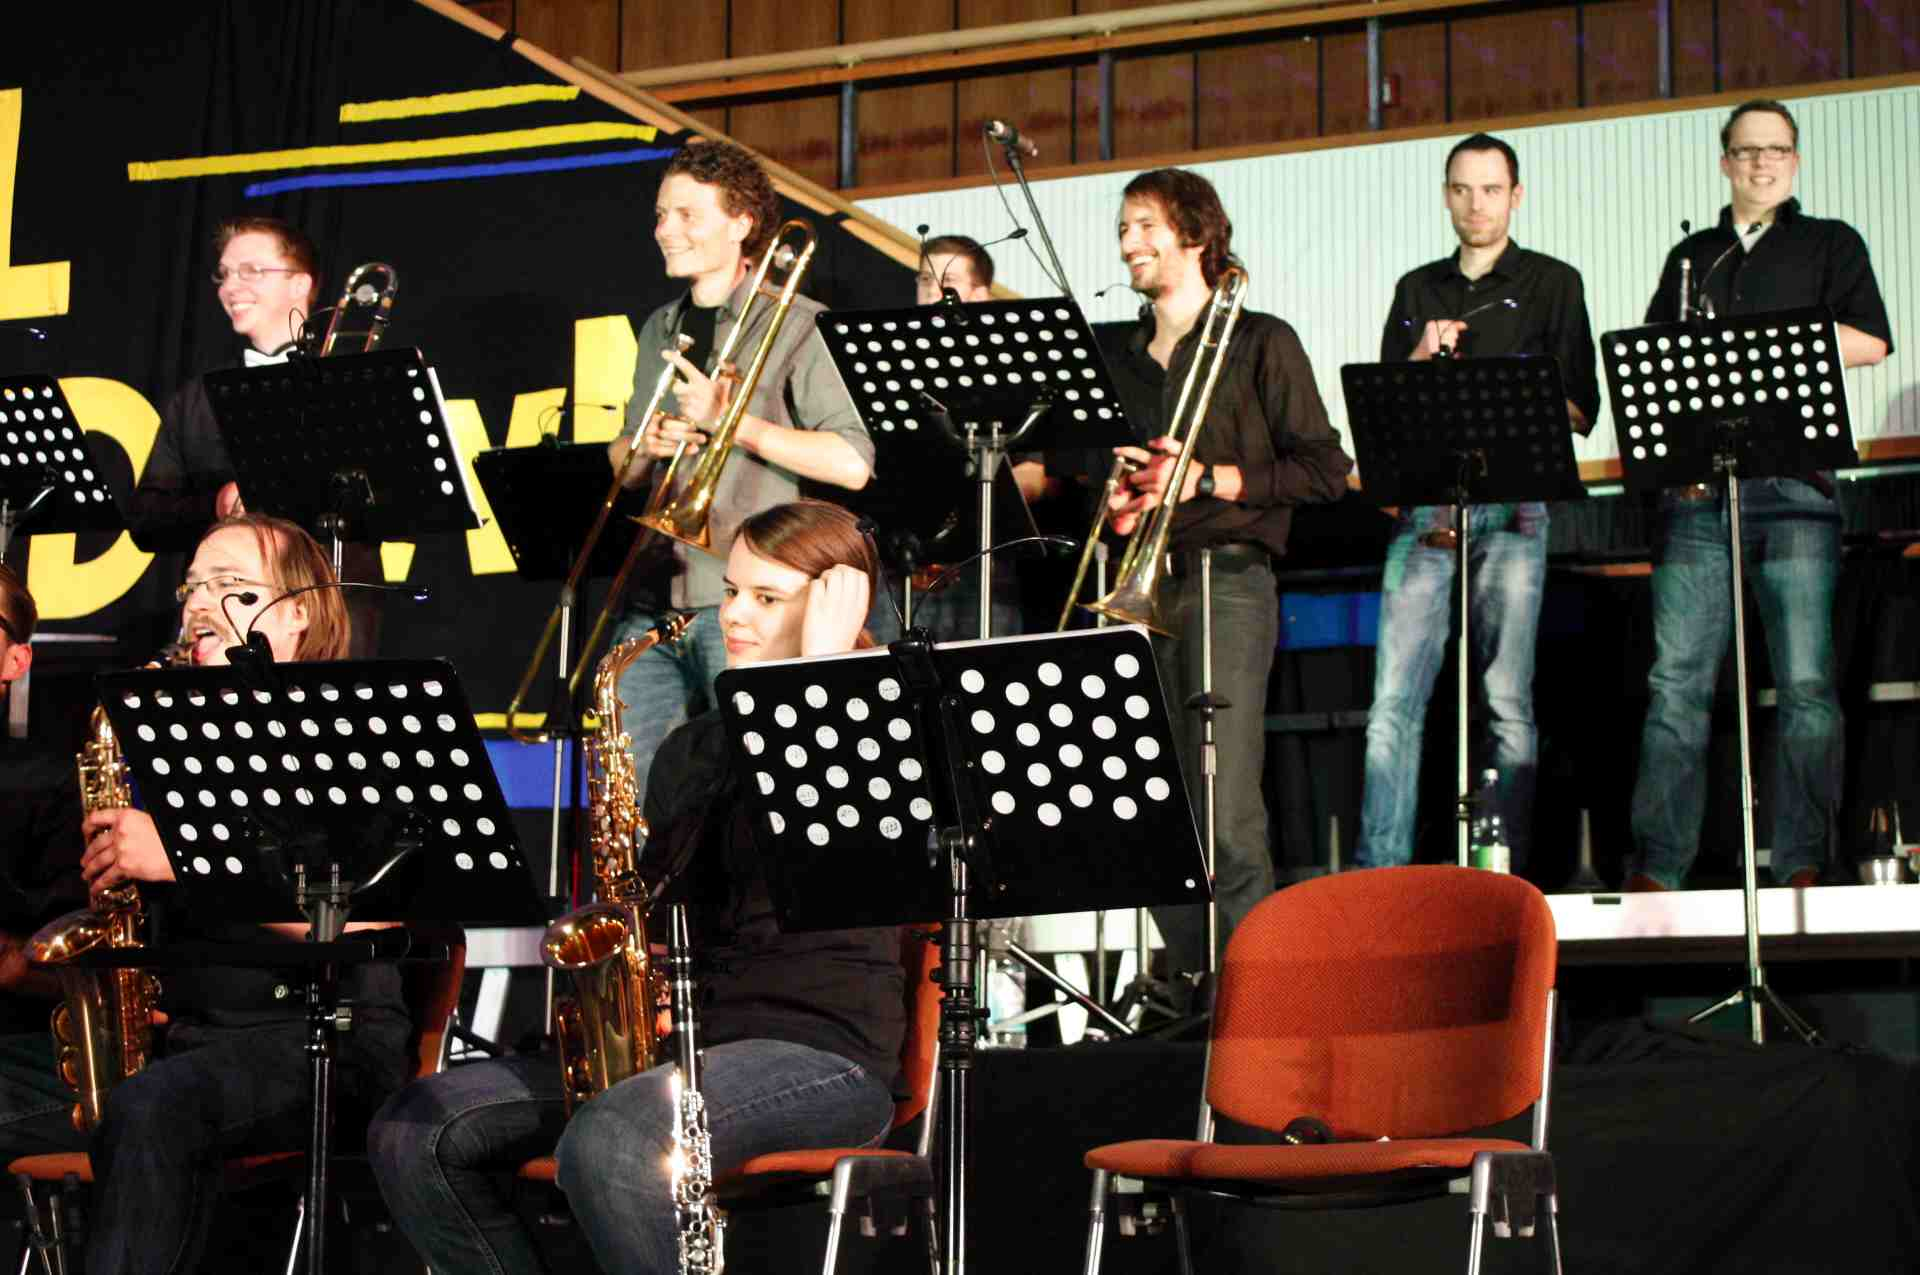 Bid Band-Konzert 2012 - The Final Countdown - 08